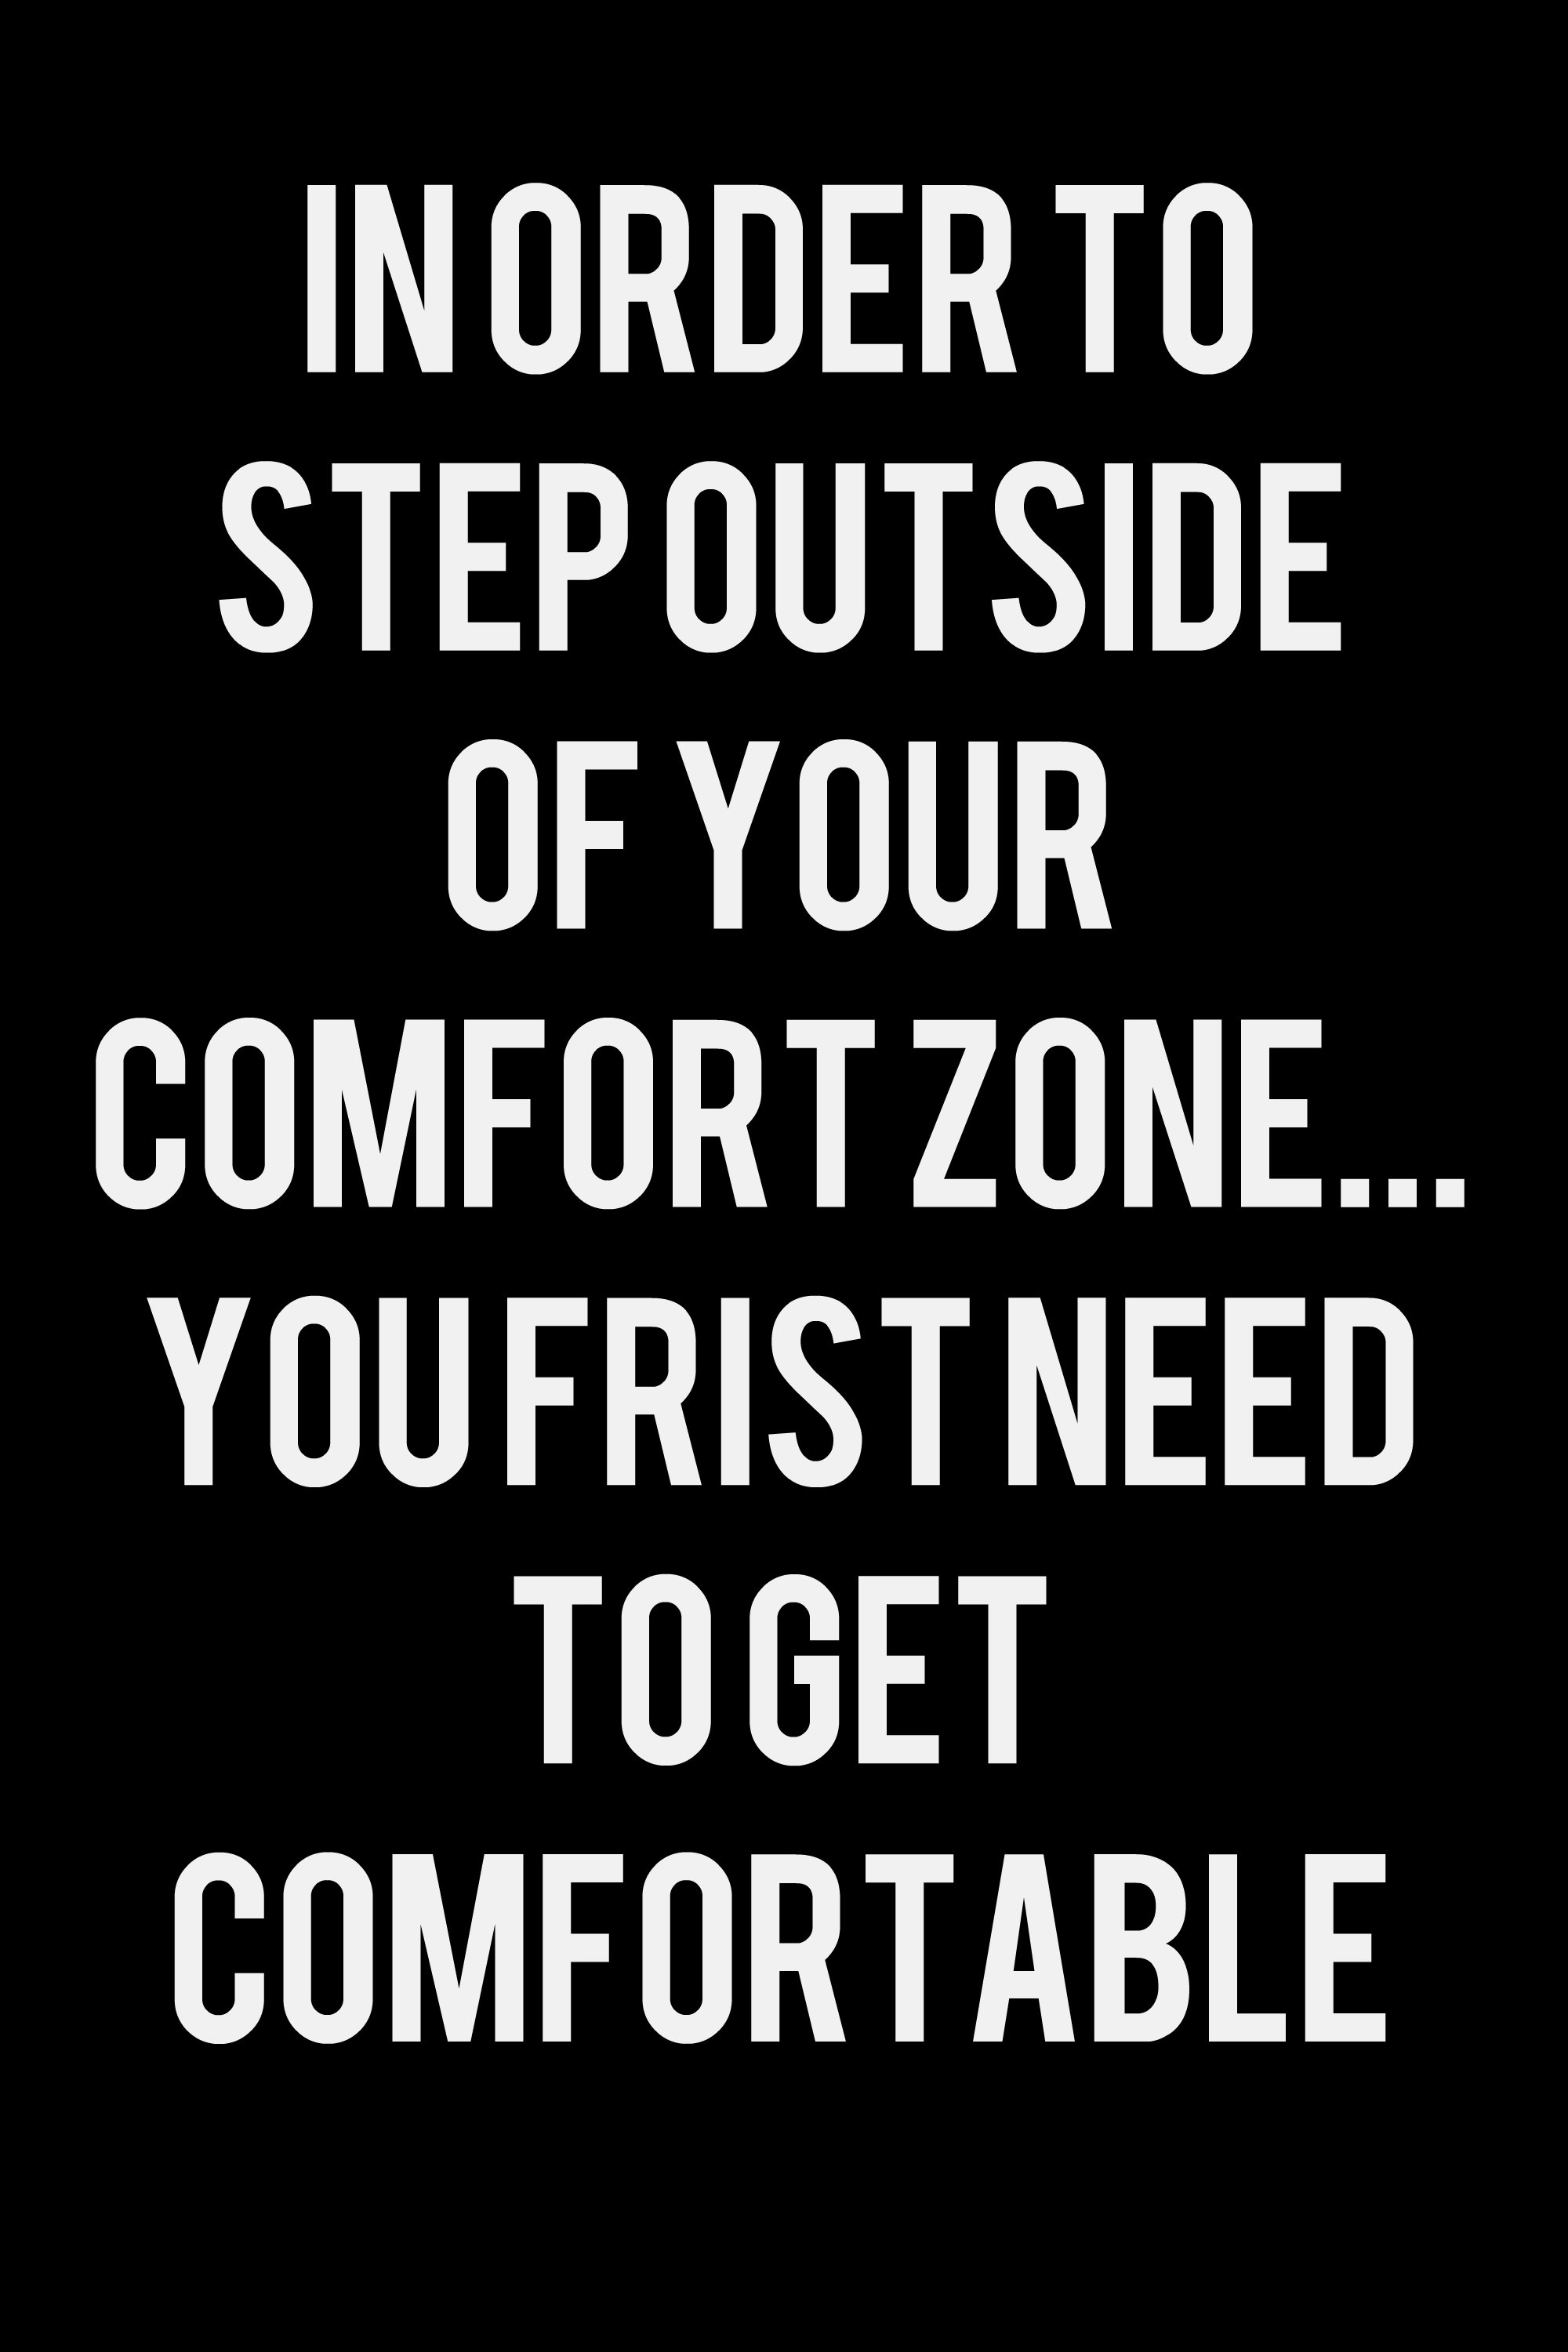 find your comfort zone before getting out of it